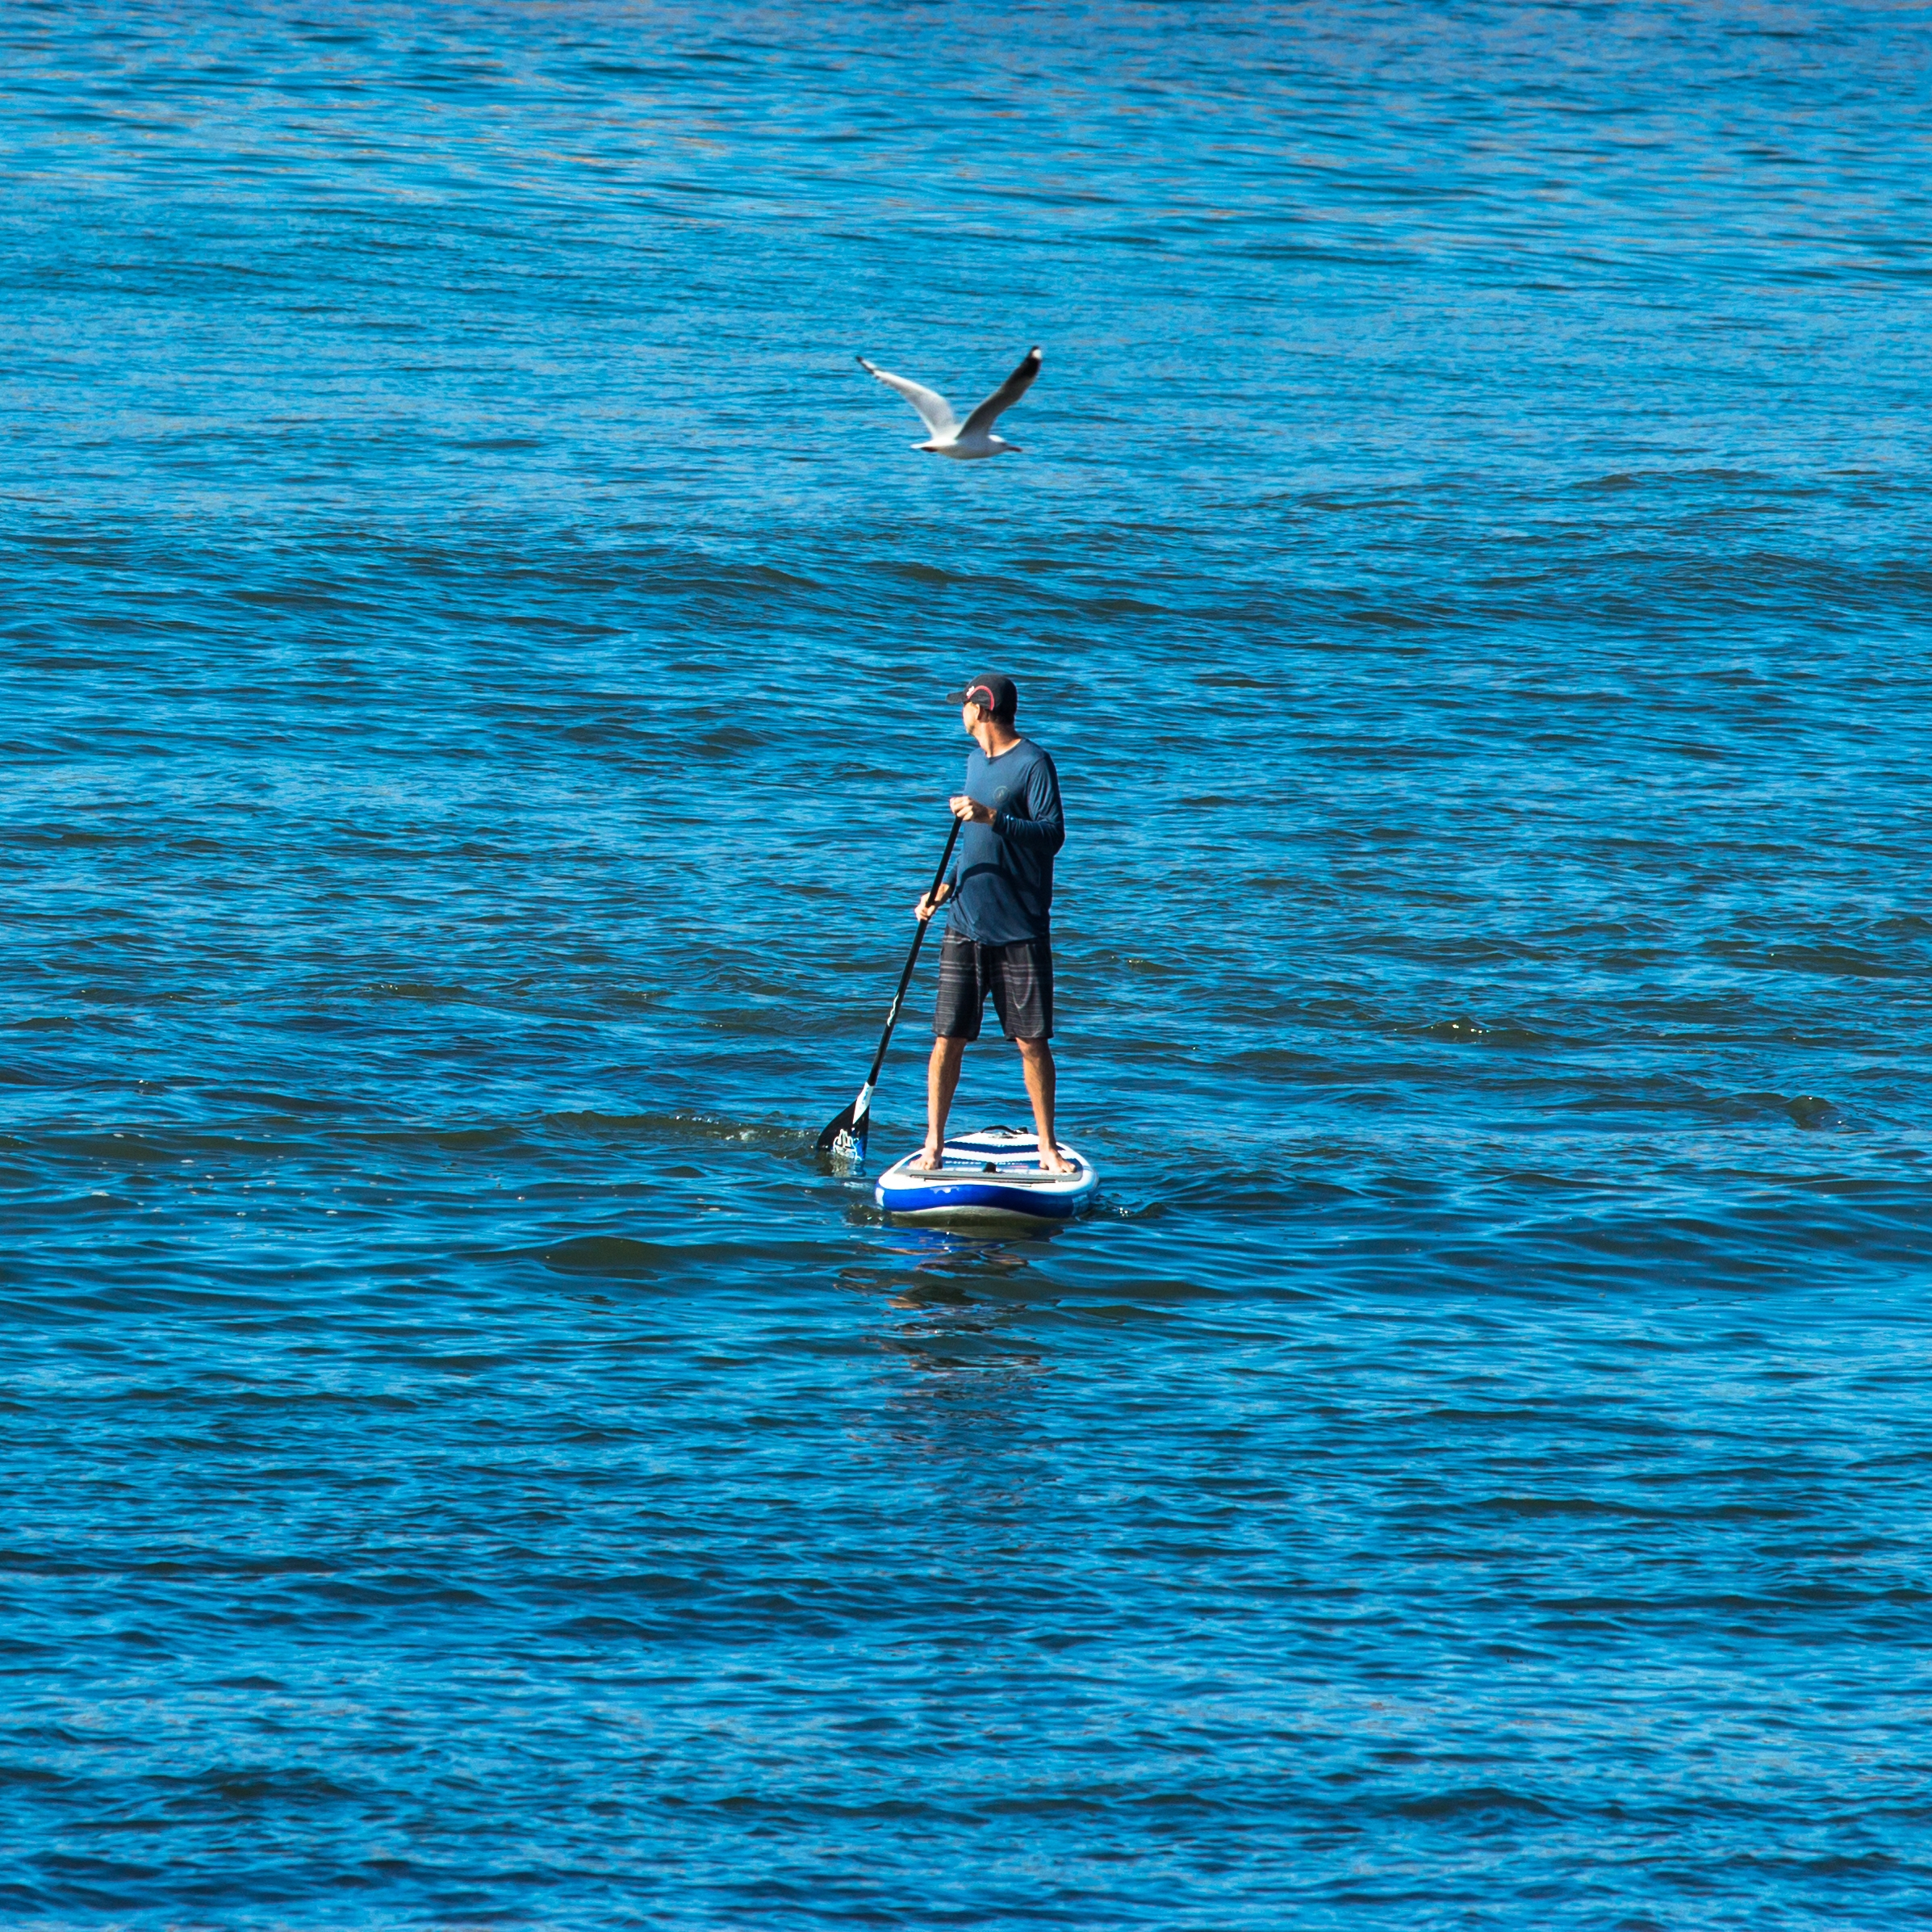 Watersports - Surf the Atlantic Ocean, paddleboard in the Barnegat/Manahawkin Bays, rent a crabbing boat, waverunner or pontoon boat with the family.